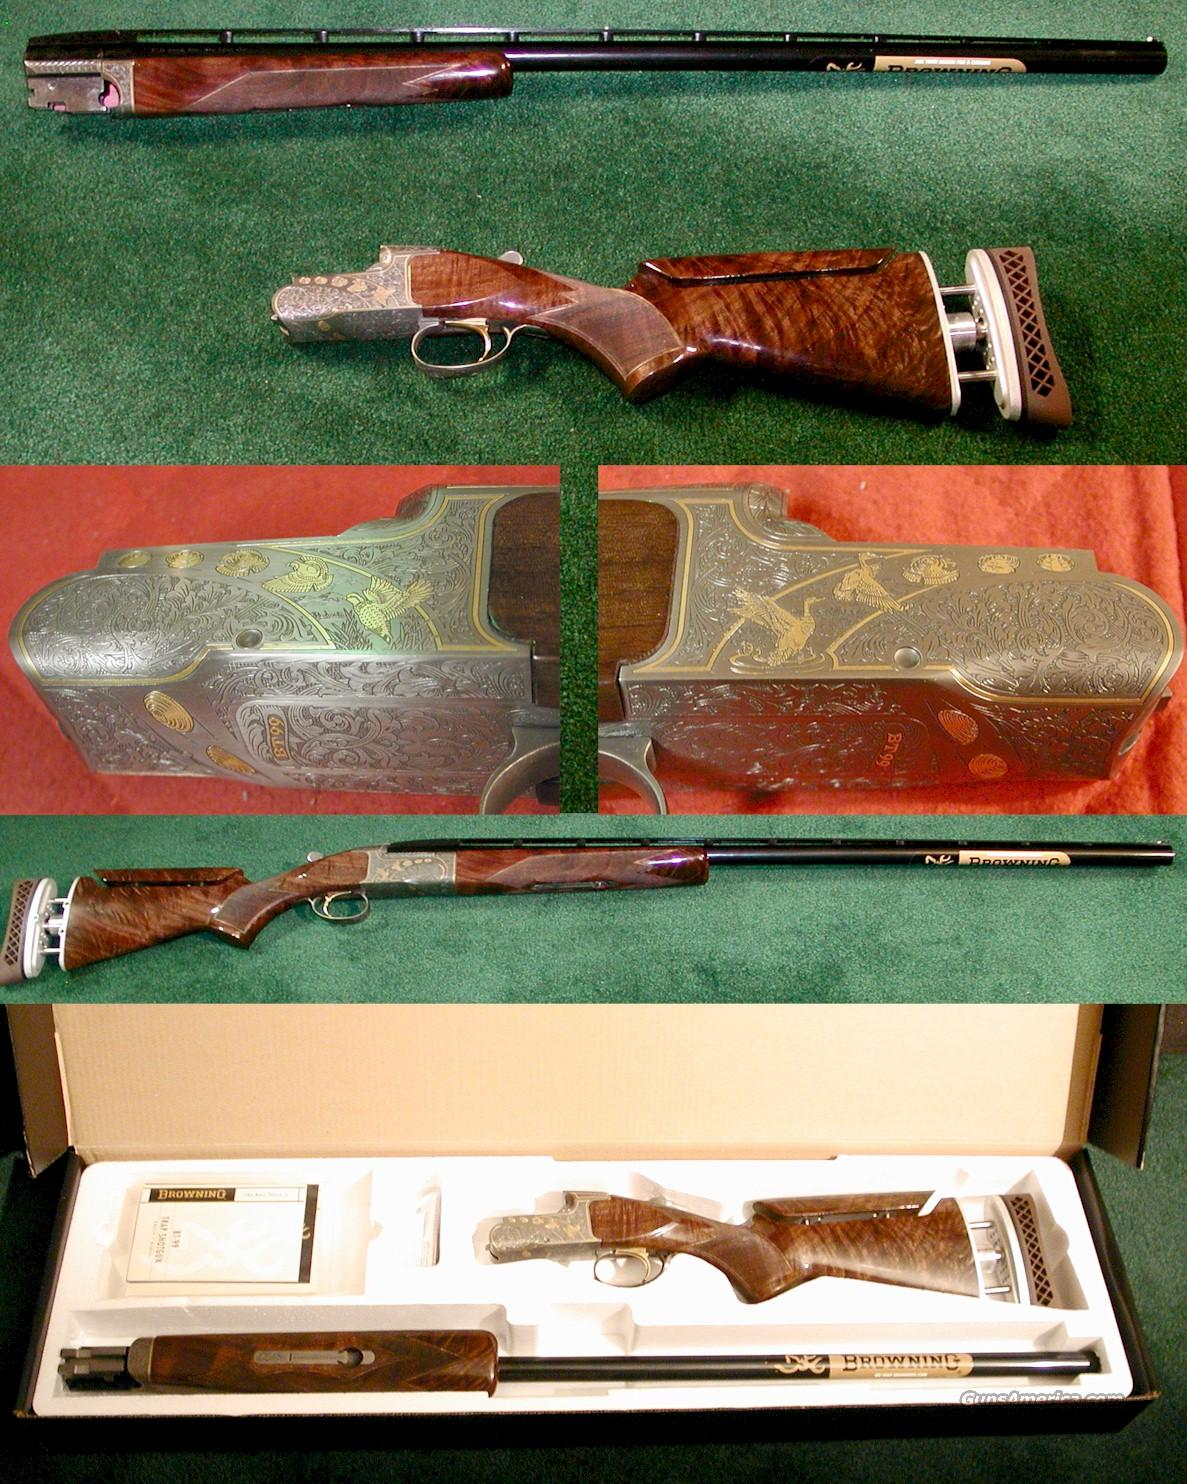 BROWNING BT-99 GOLDEN CLAYS  Guns > Shotguns > Browning Shotguns > Single Barrel